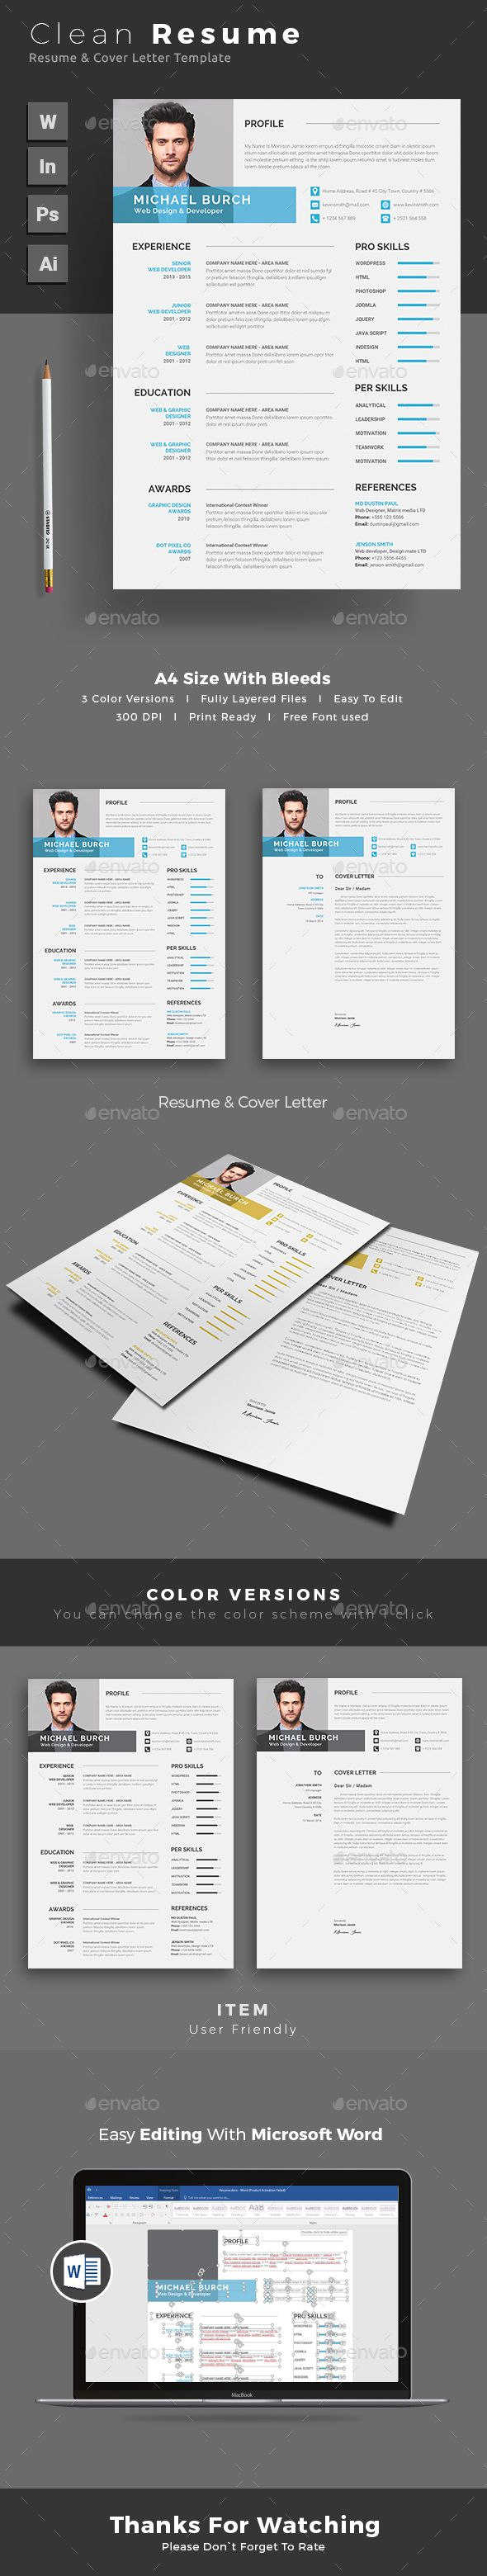 Resume Resumes Stationery Download here Resume